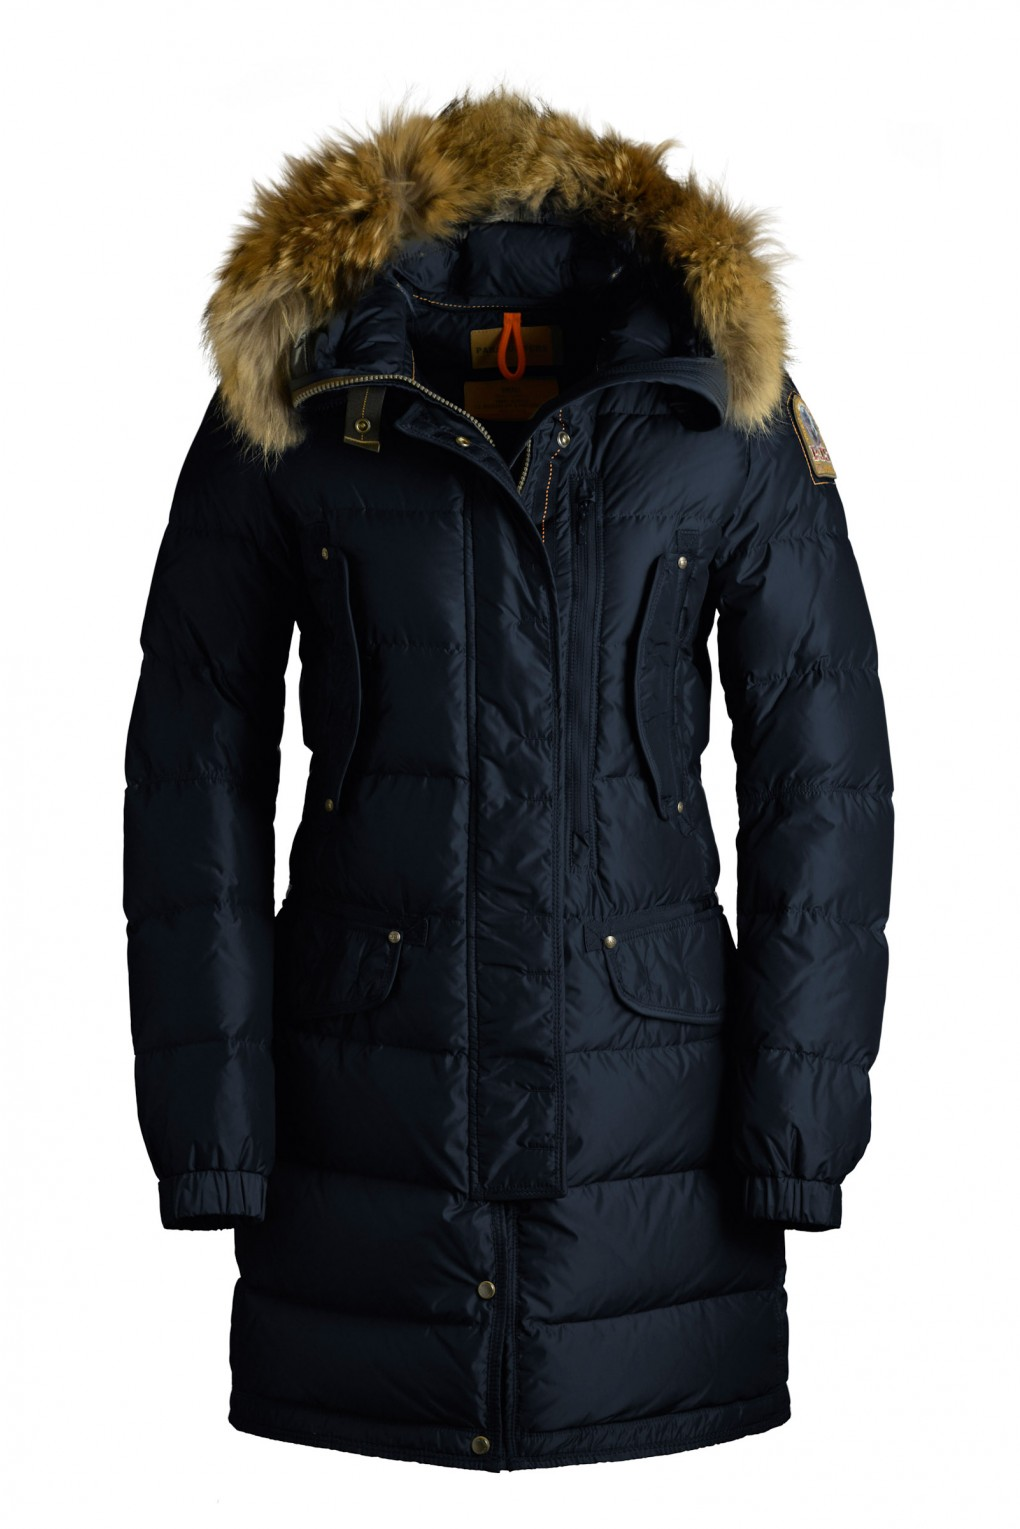 parajumpers HARRASEEKET woman outerwear Navy